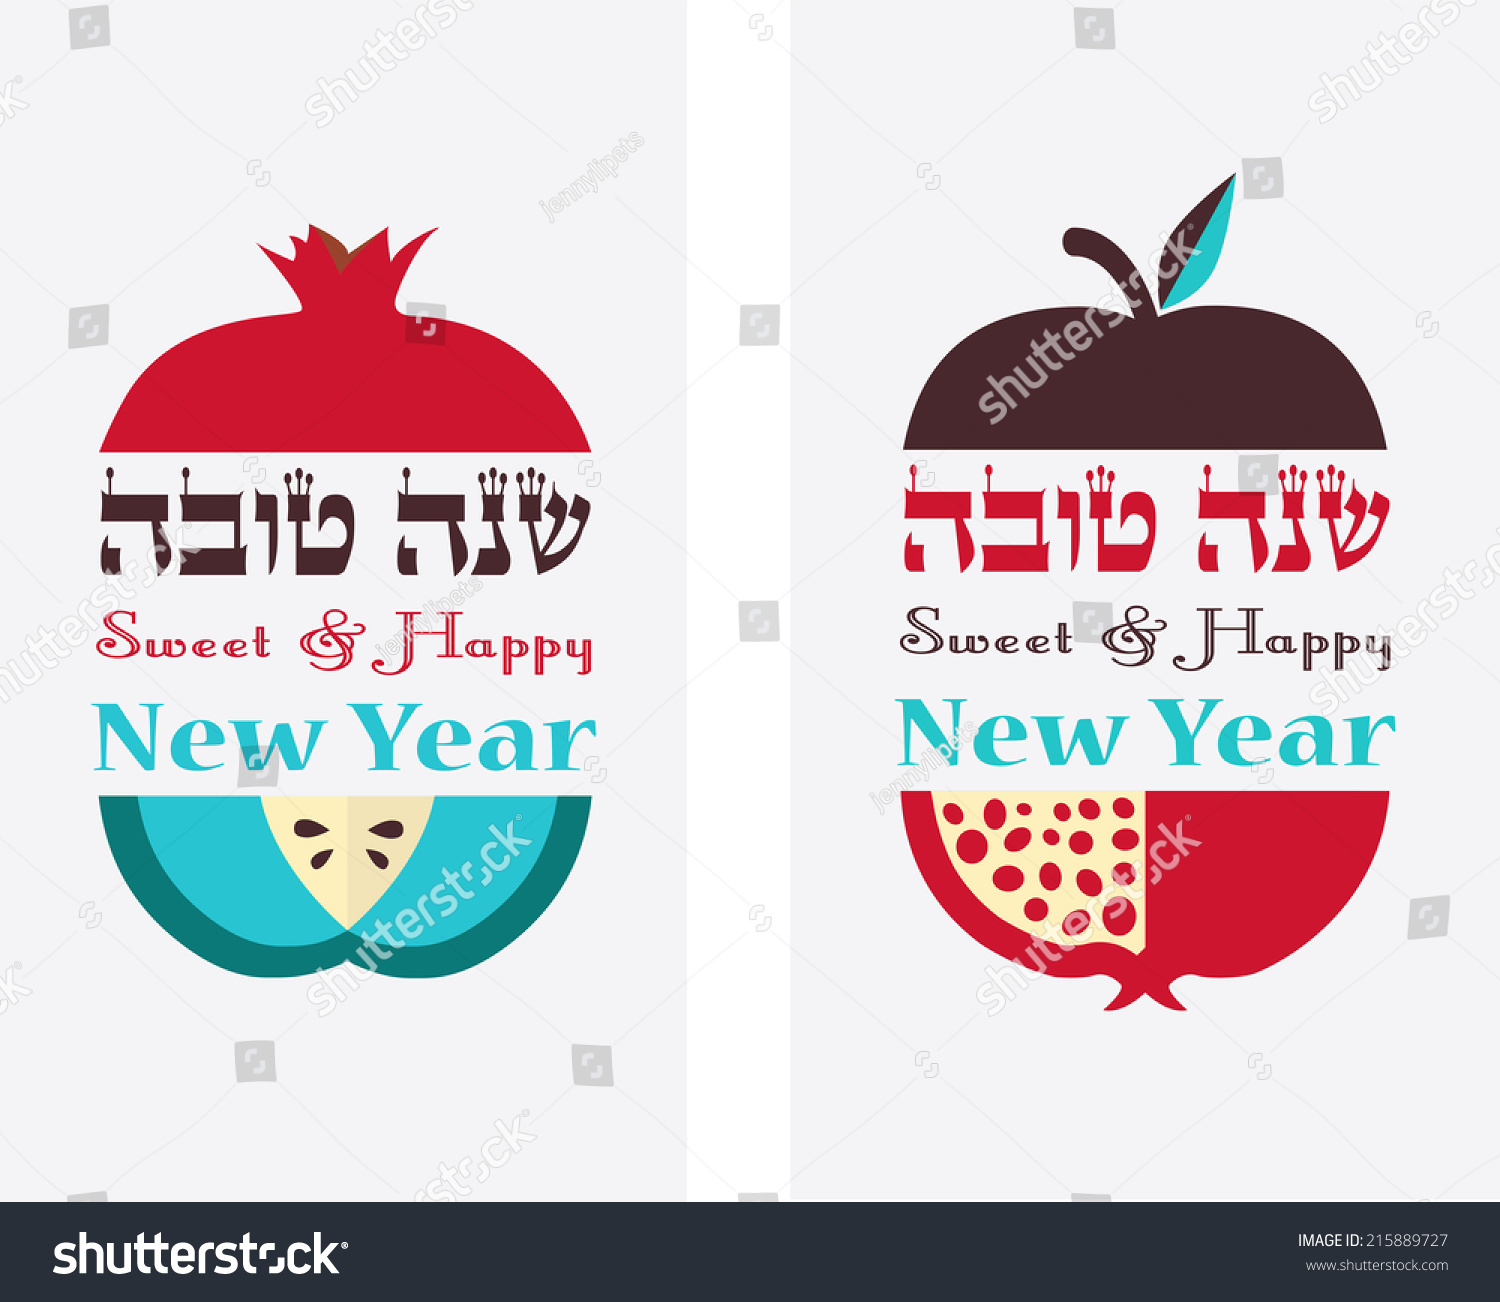 Free jewish new year cards greeting cards new--year.info 2019